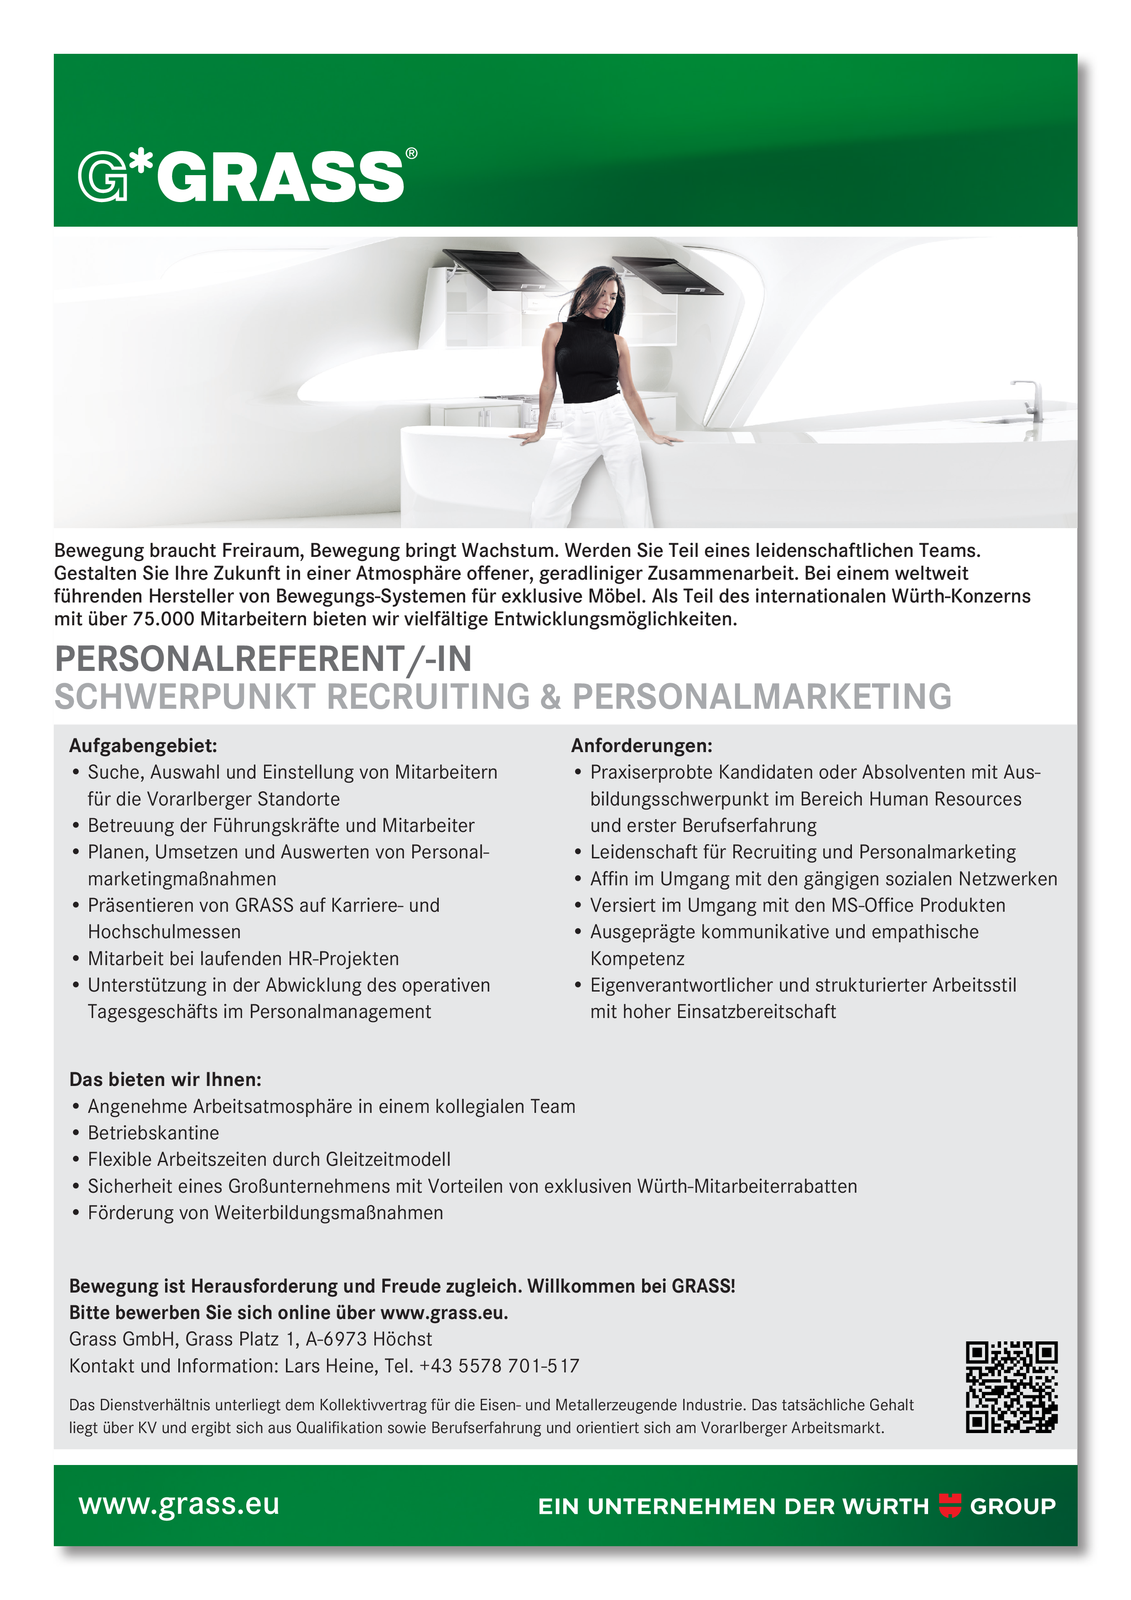 Personalreferent/-in Schwerpunkt Recruiting & Personalmarketing